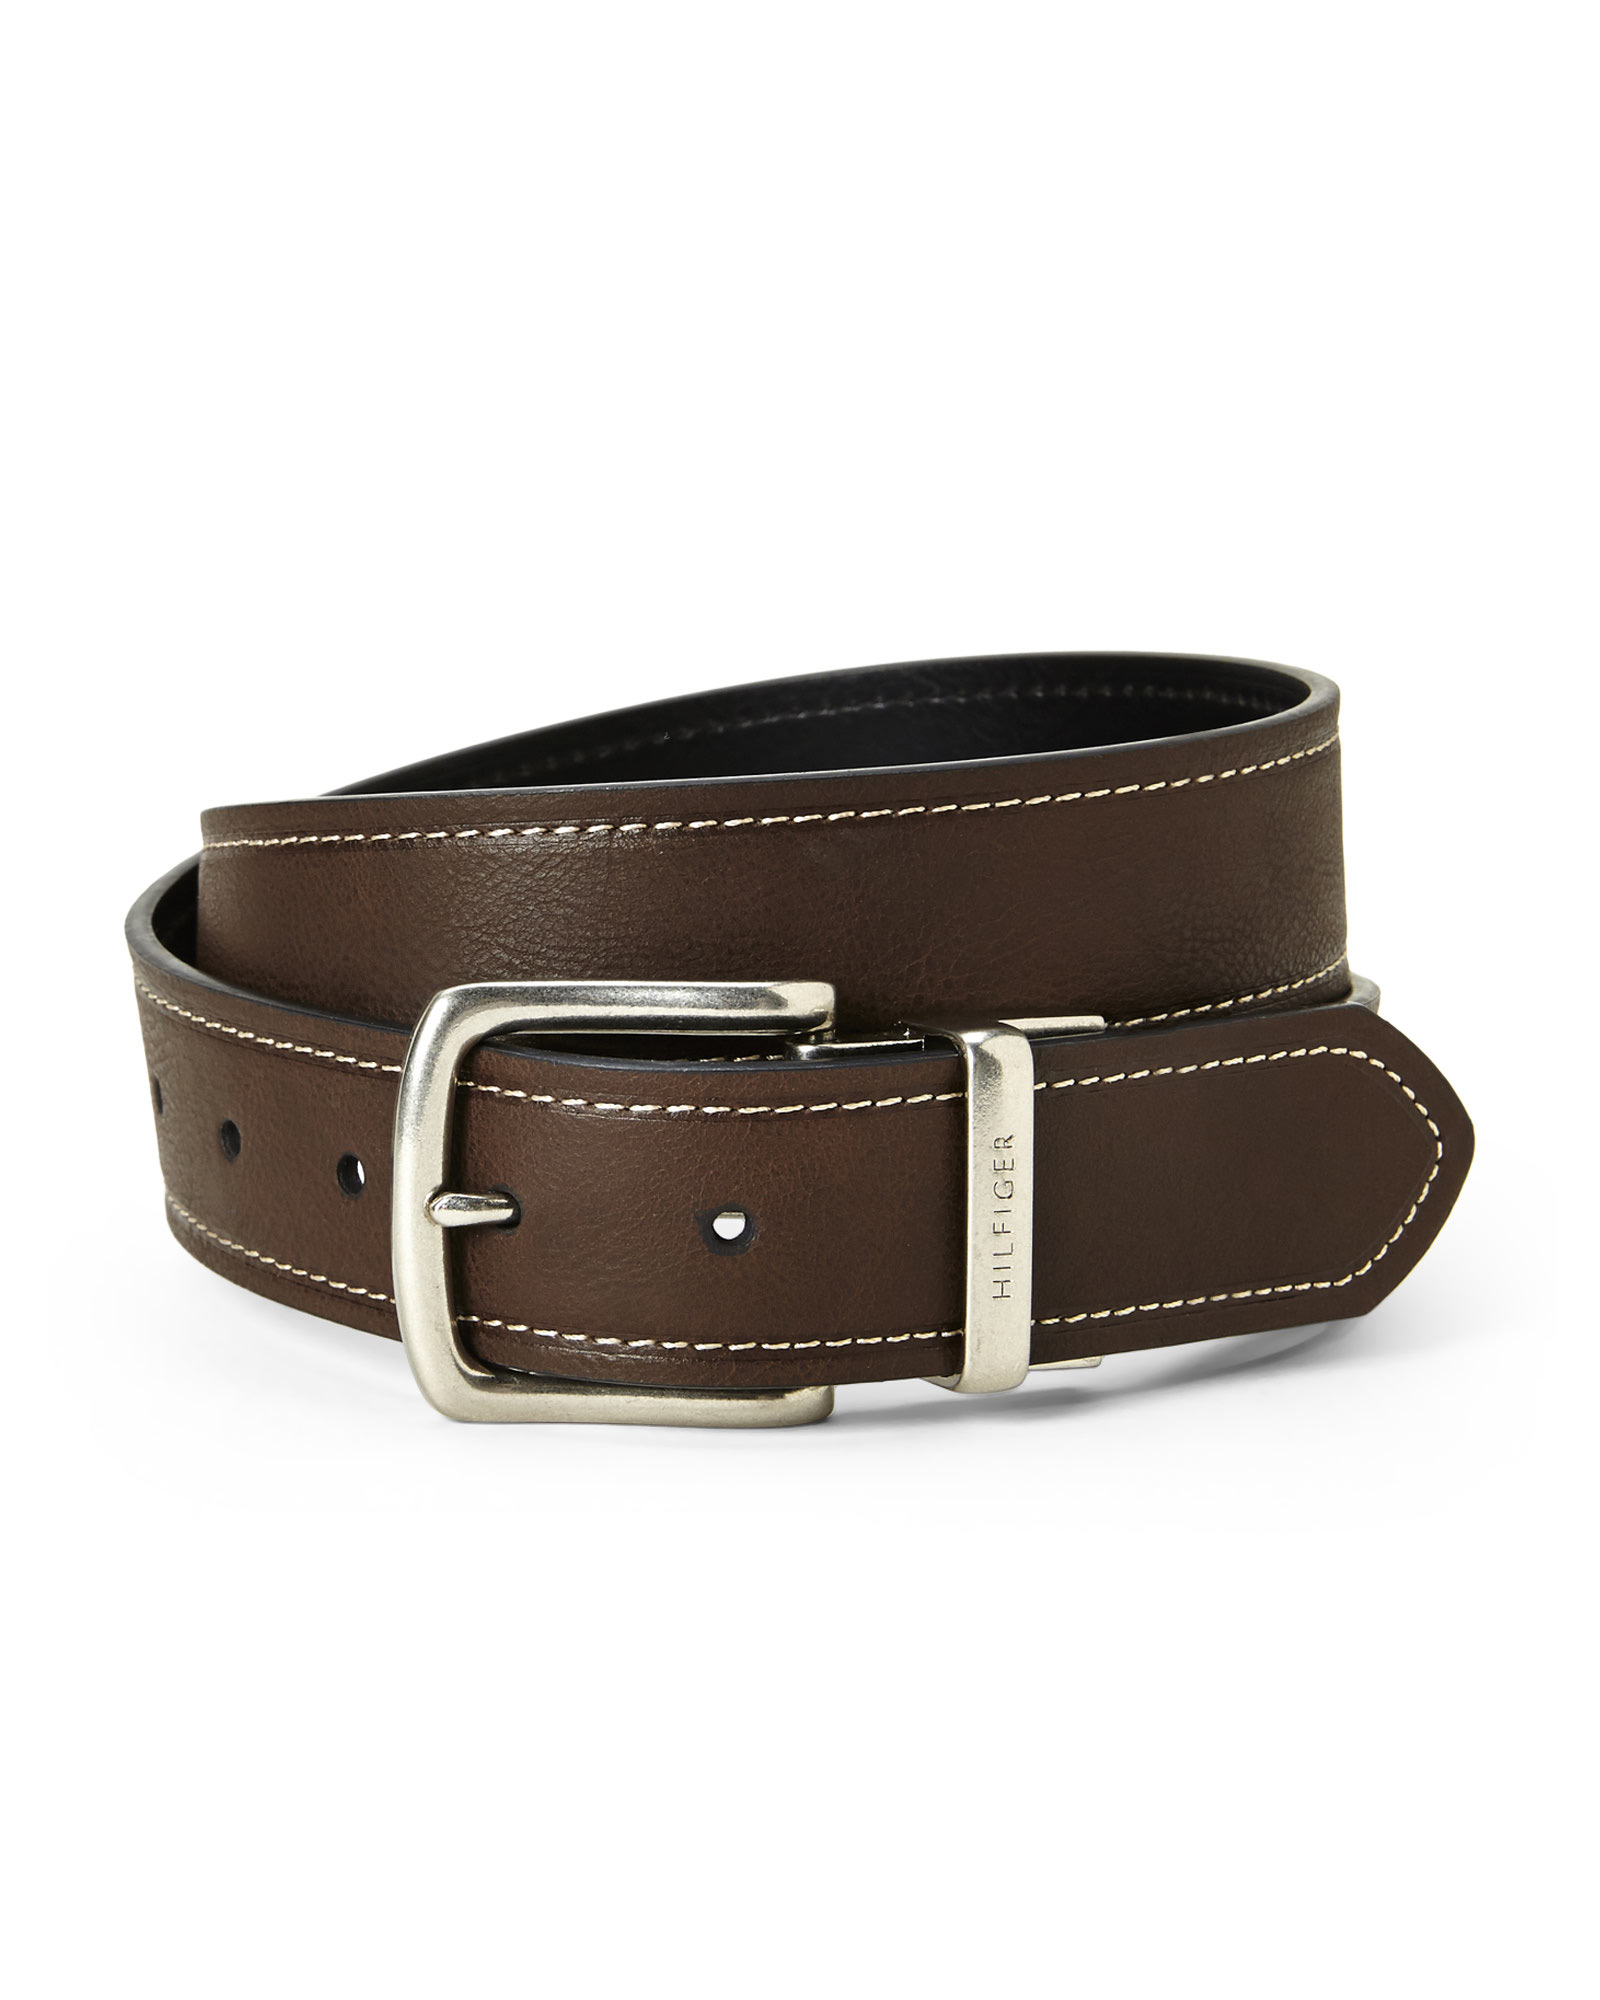 hilfiger brown black reversible belt in brown